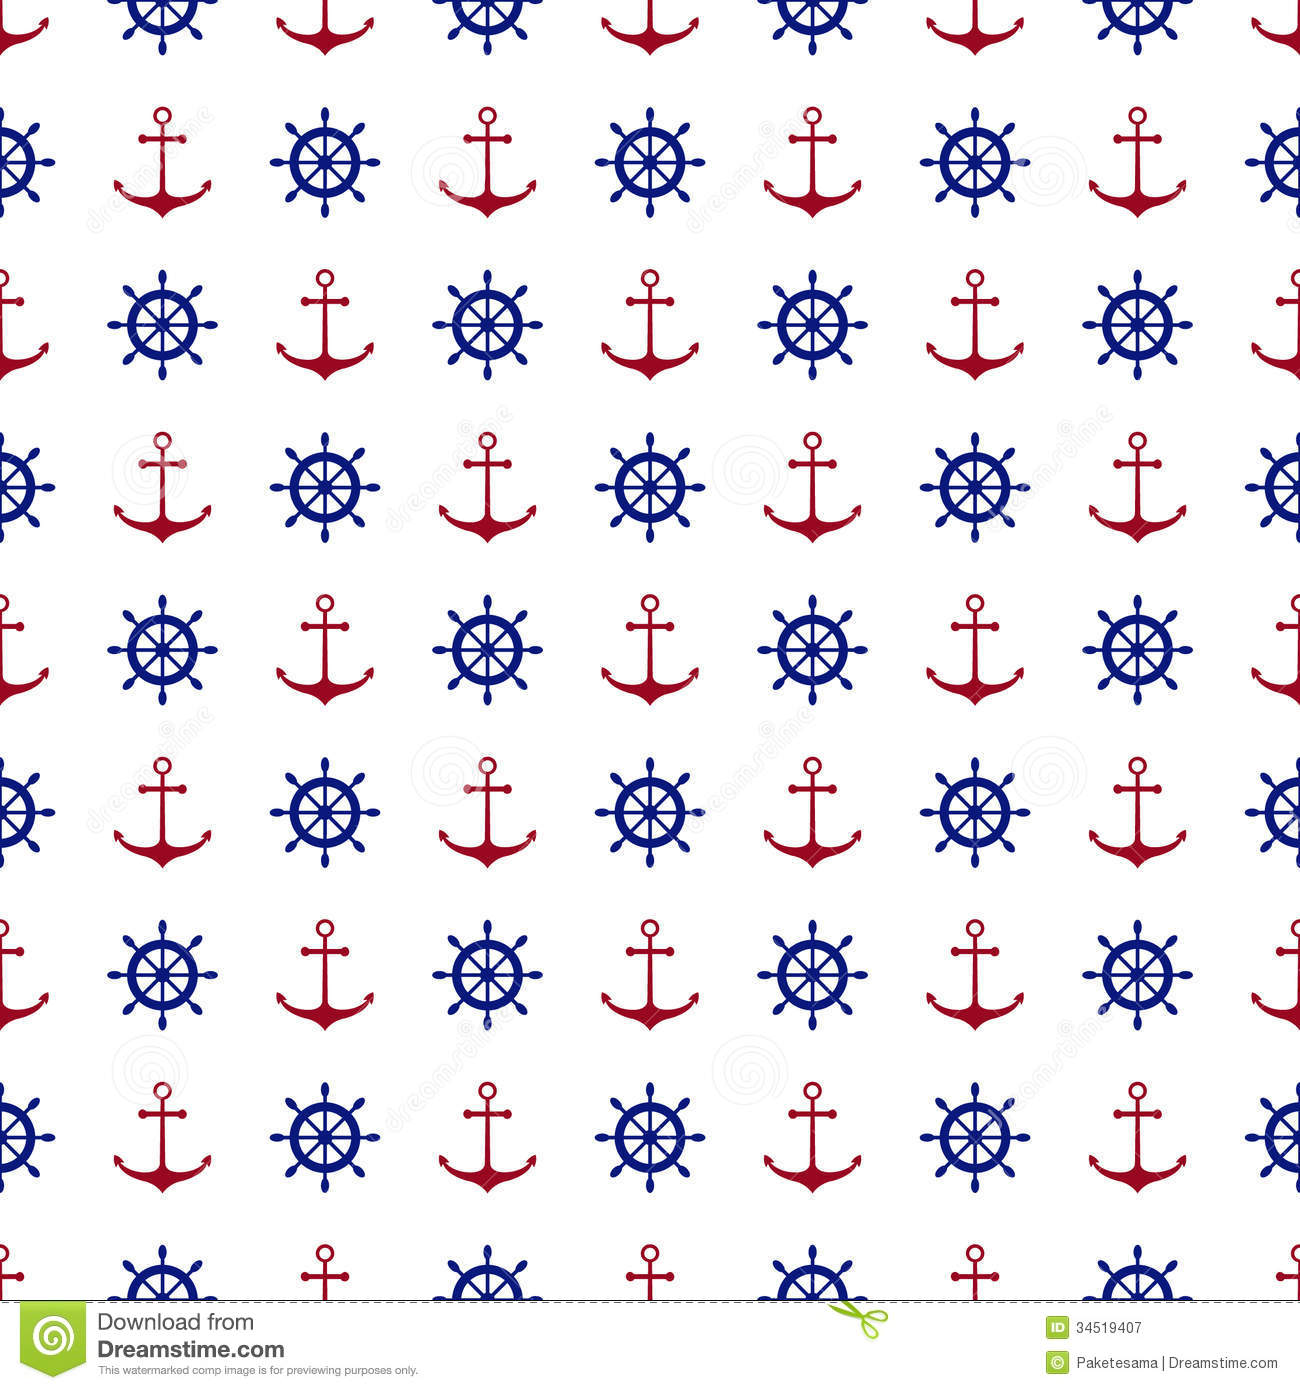 180 Best Nautical Images On Pinterest